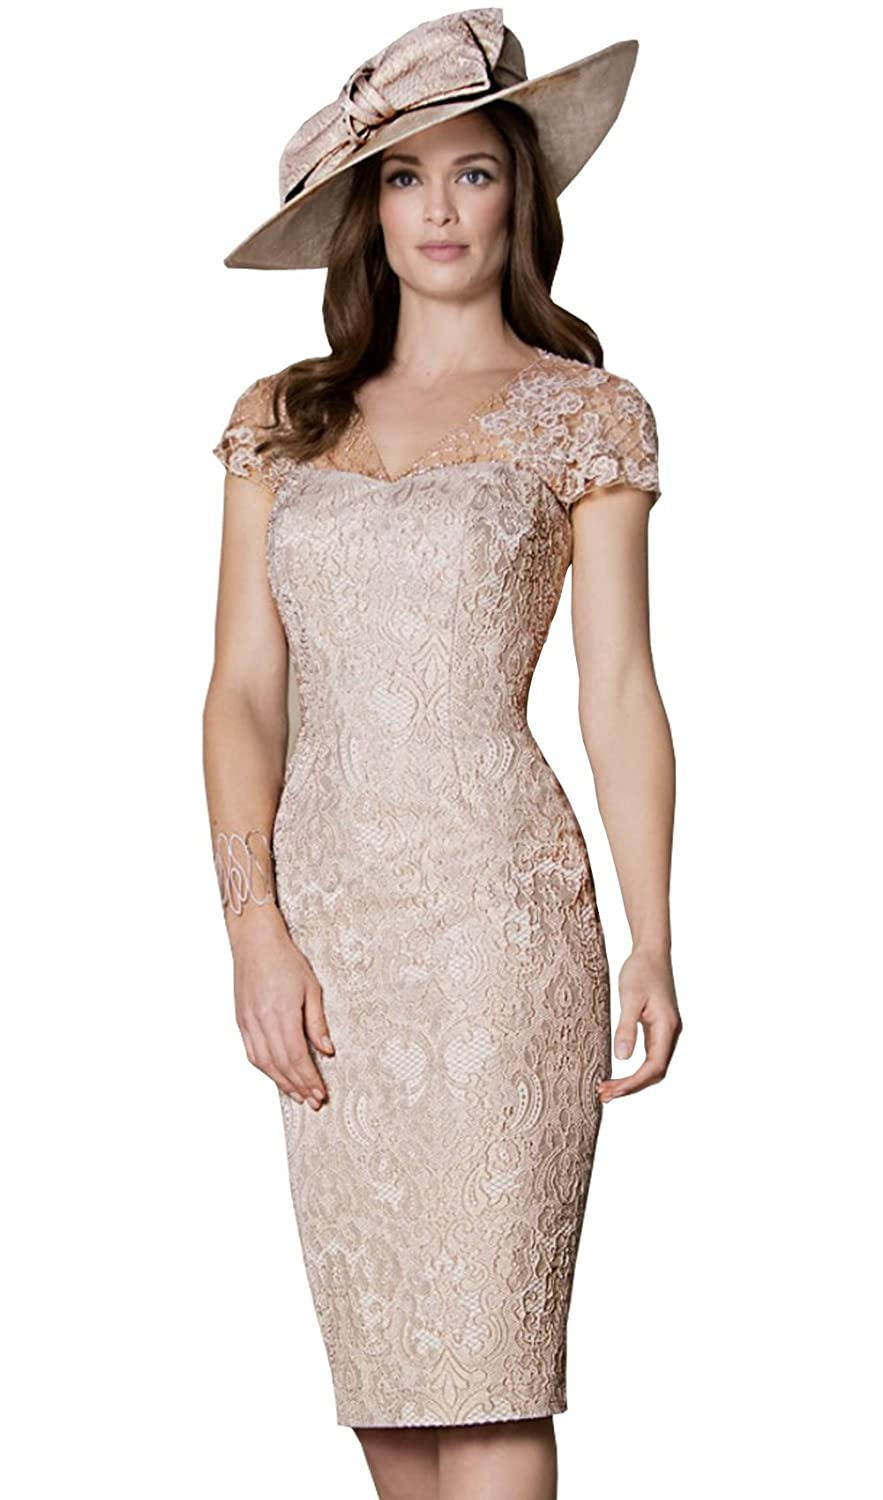 cc72536143 Amazon.com  Newdeve Women Light Champagne Lace Knee Length Formal Dresses   Clothing